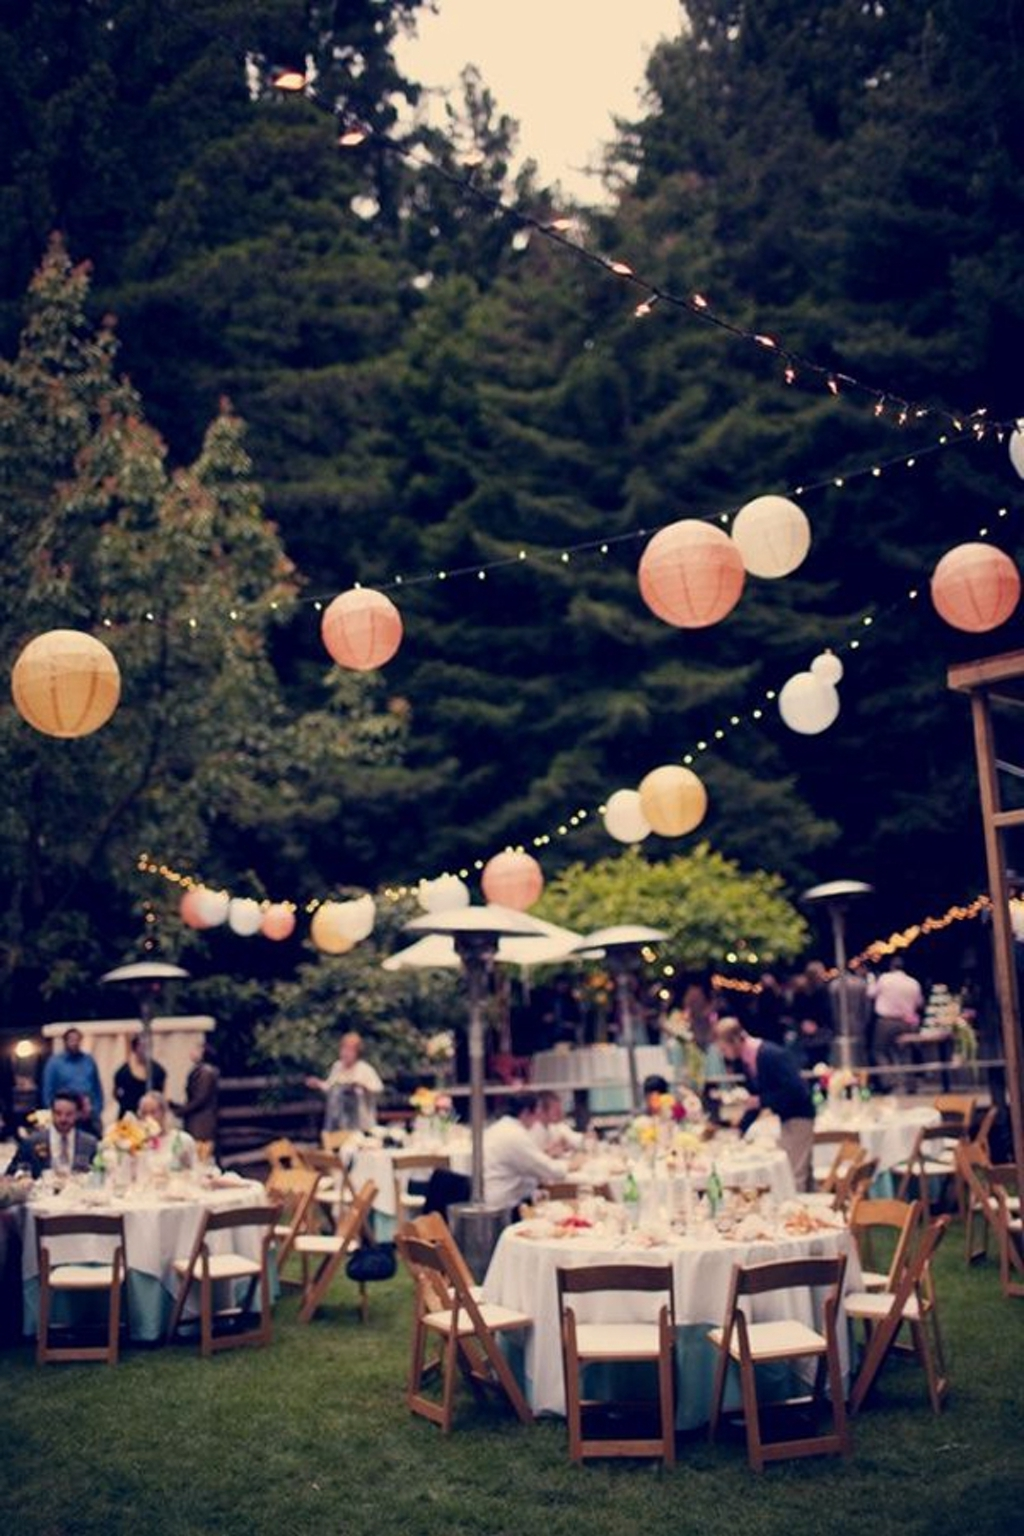 Outdoor Lanterns For Wedding Throughout Most Up To Date Lighting: Outdoor Wedding Reception With Lanterns – 20 Beautiful (View 10 of 20)